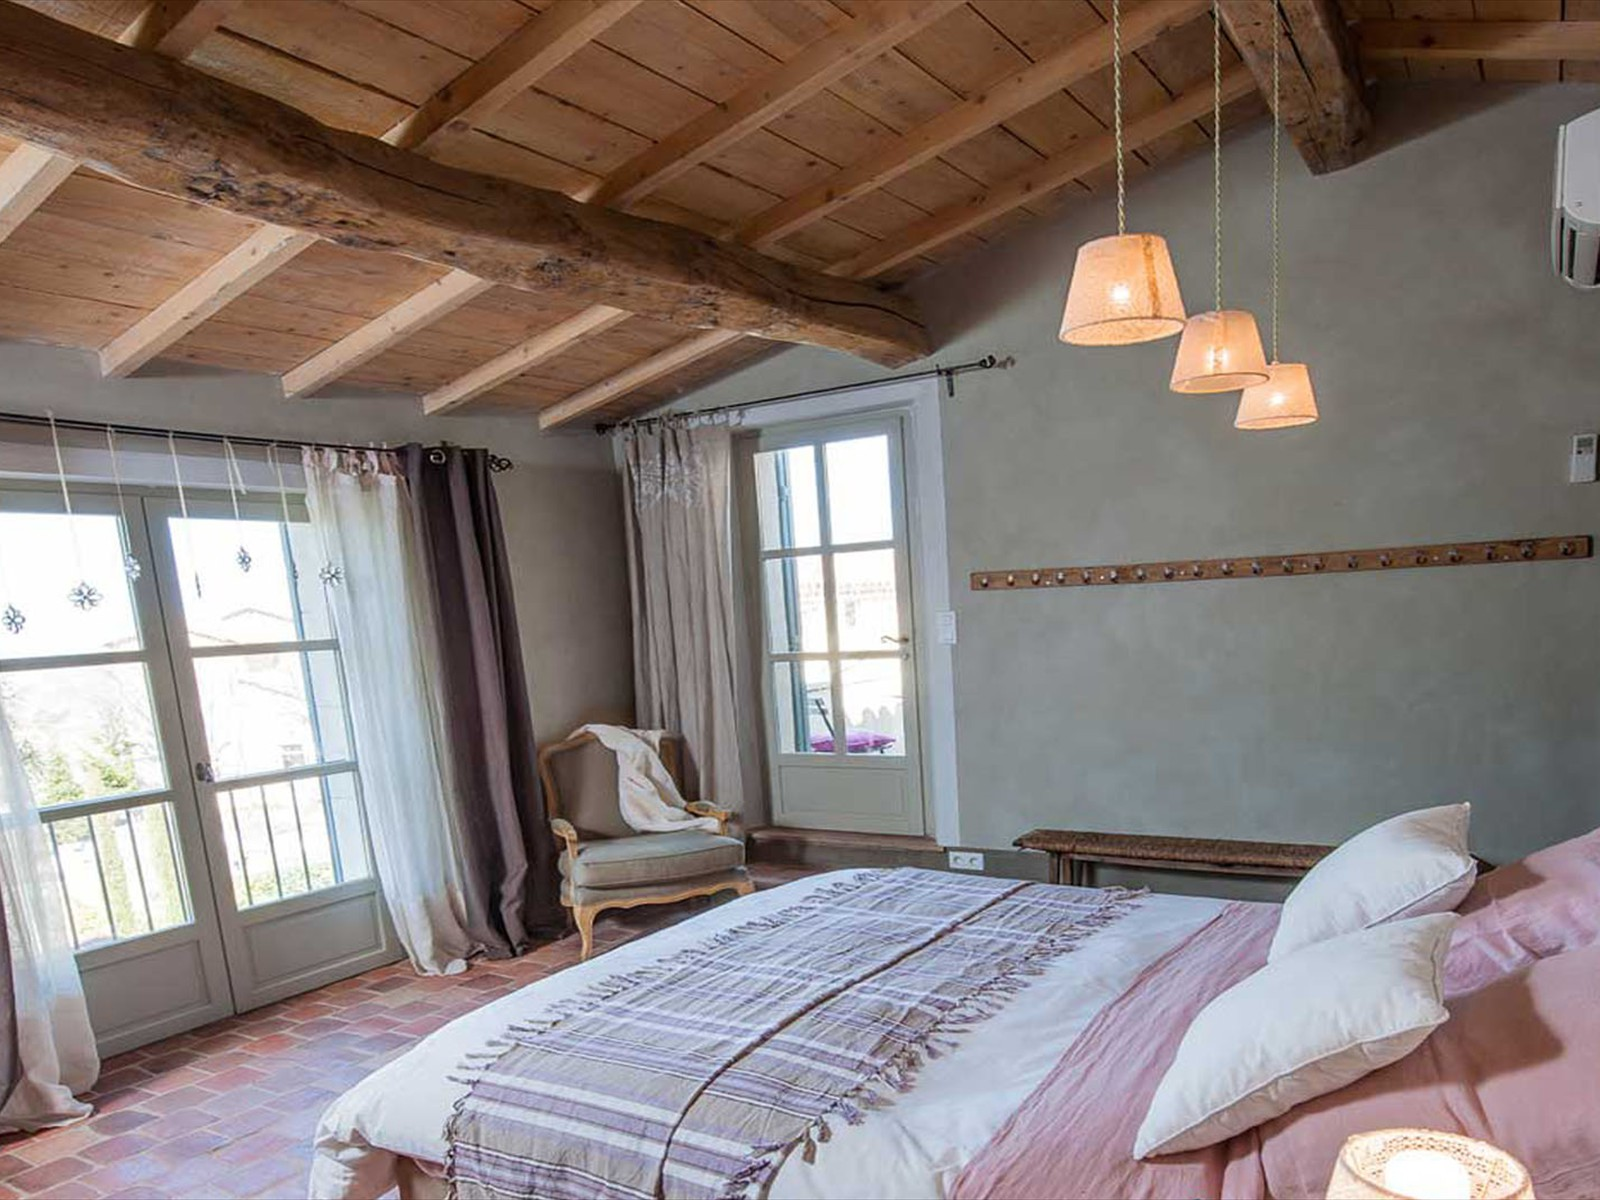 exclusive_rentals_provence_vacation_luxury_homes_holiday_rentals_mont_ventoux_luberon_14